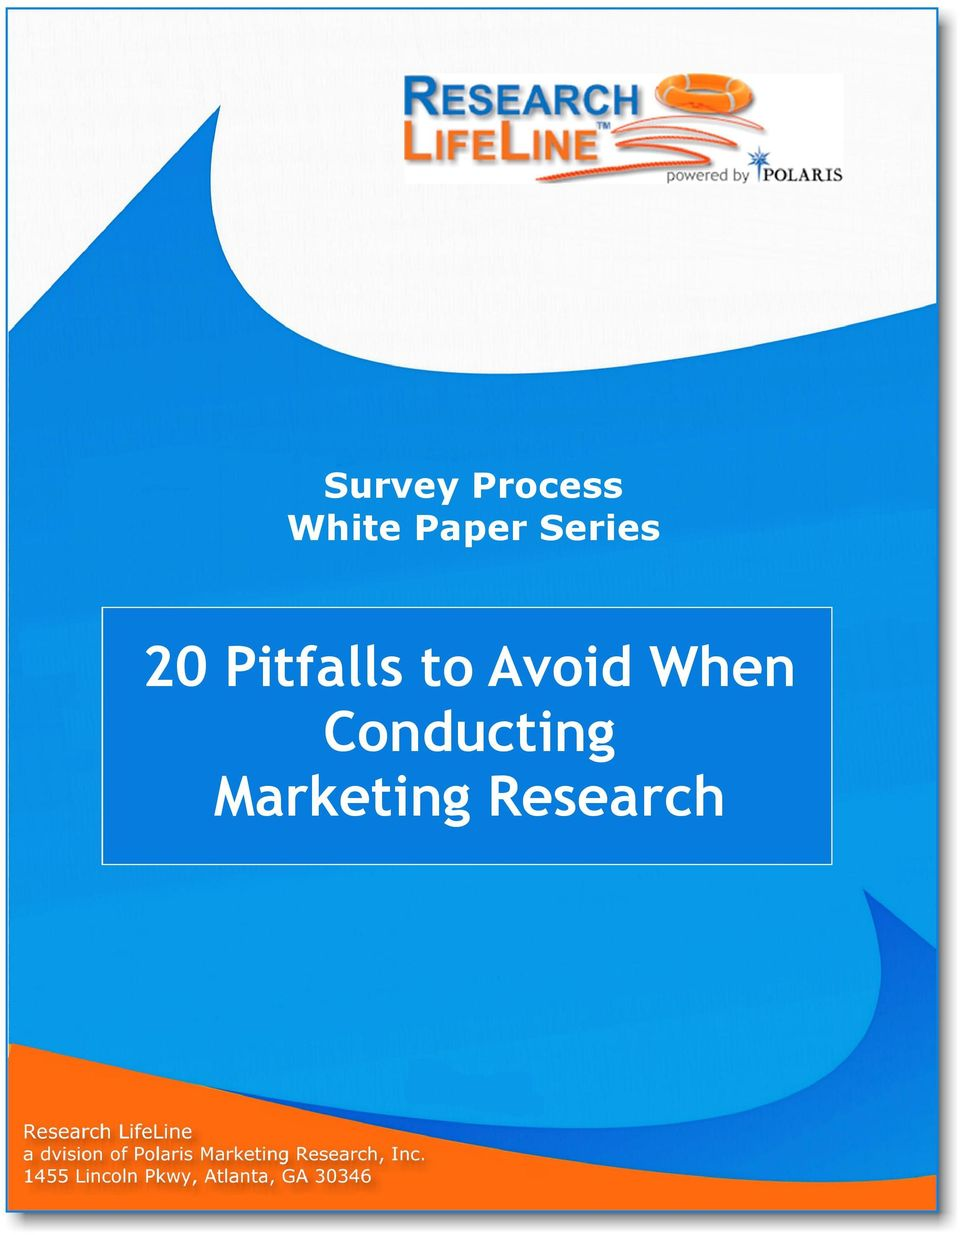 MARKETING RESEARCH, INC.